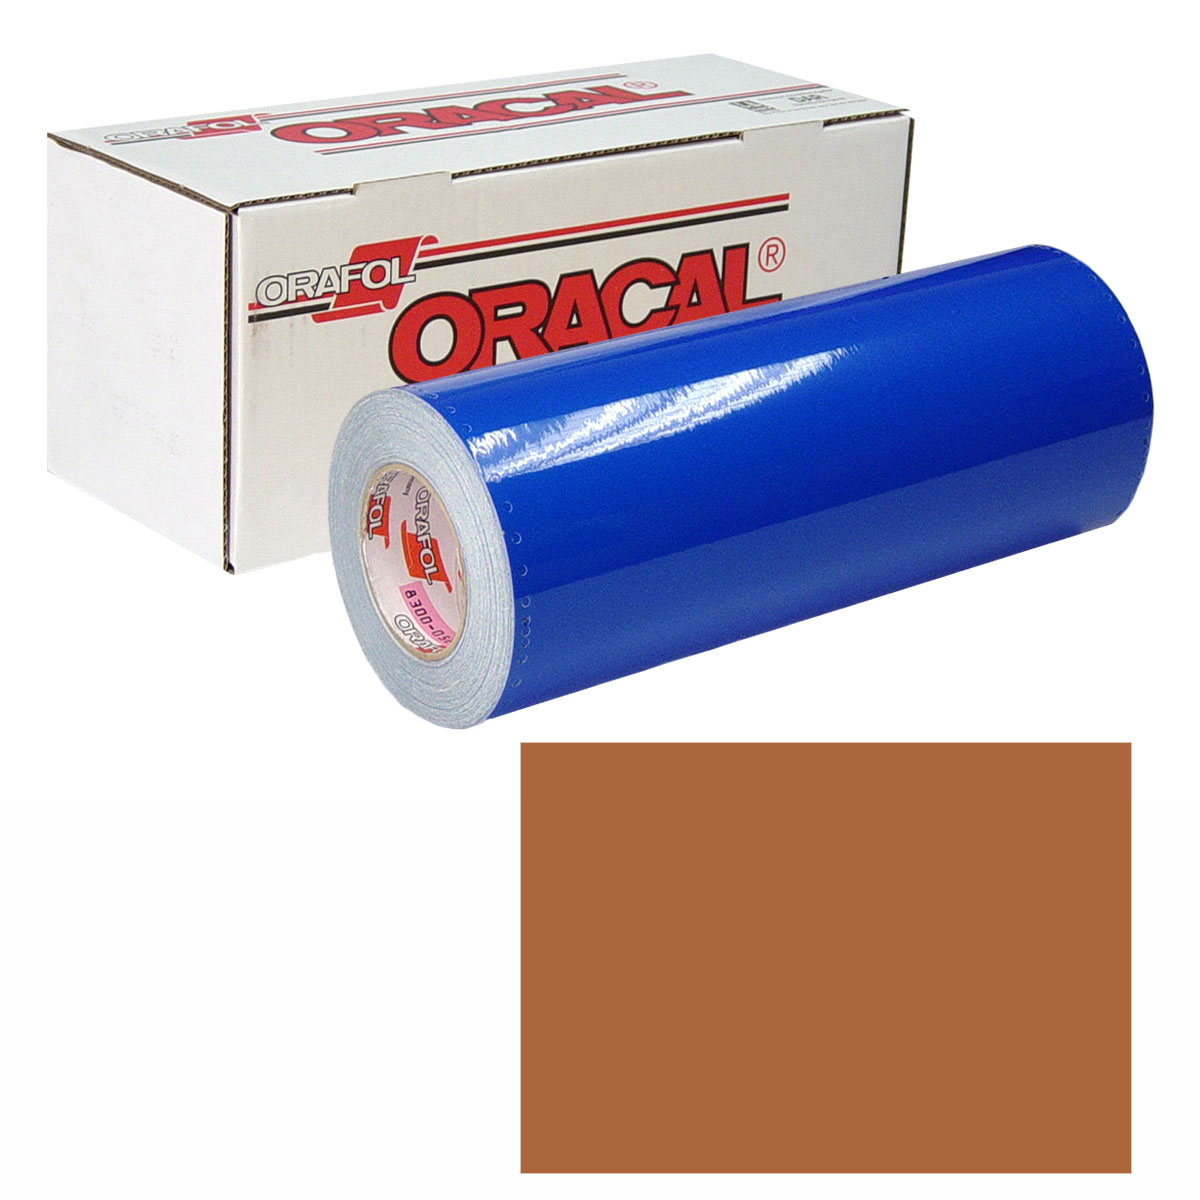 ORACAL 631 15In X 50Yd 092 Copper Met